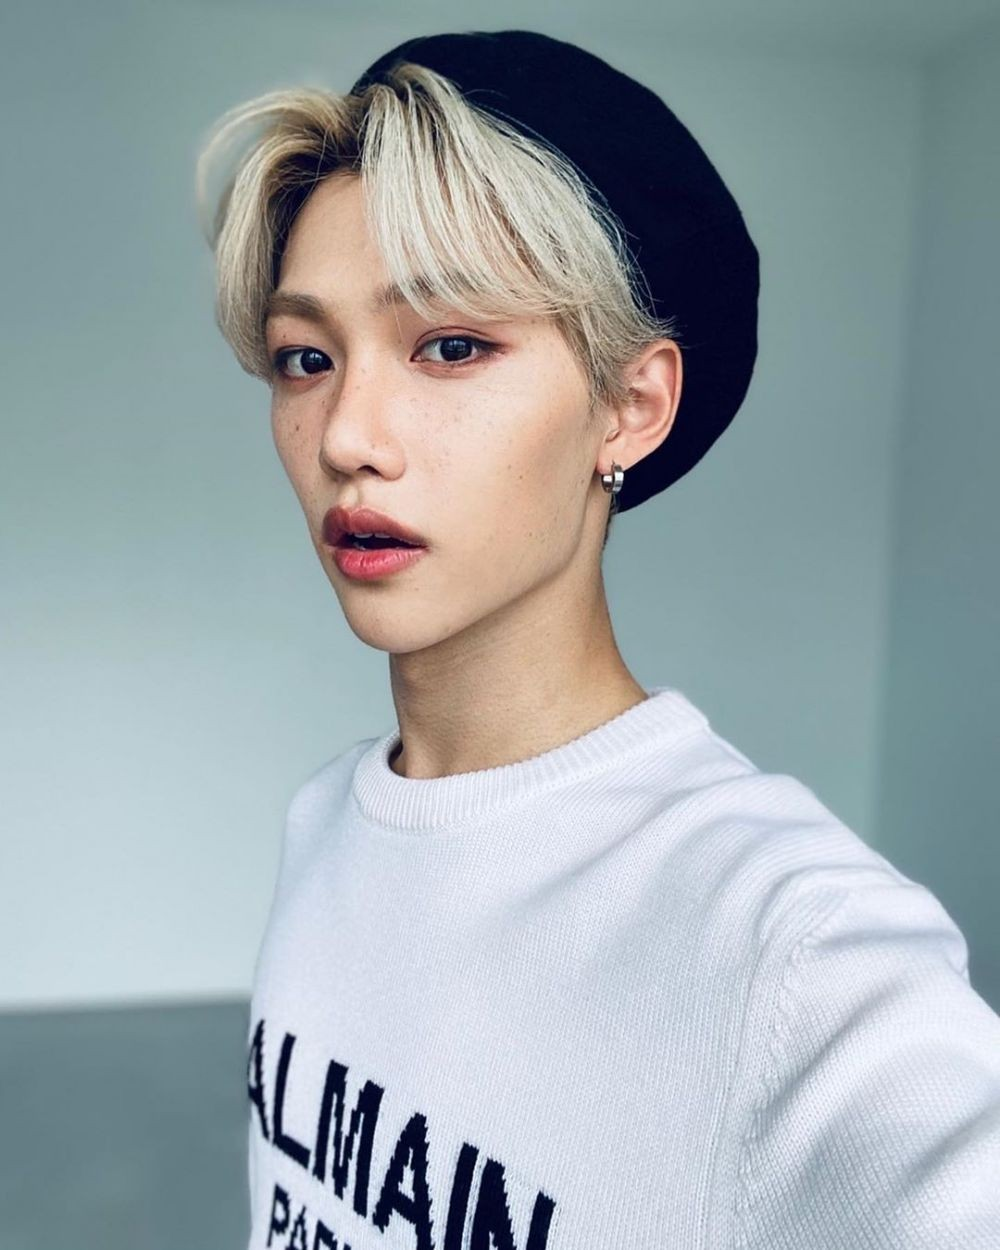 10 Foto Selfie Felix Stray Kids yang Super Hits, Glowing Abis!